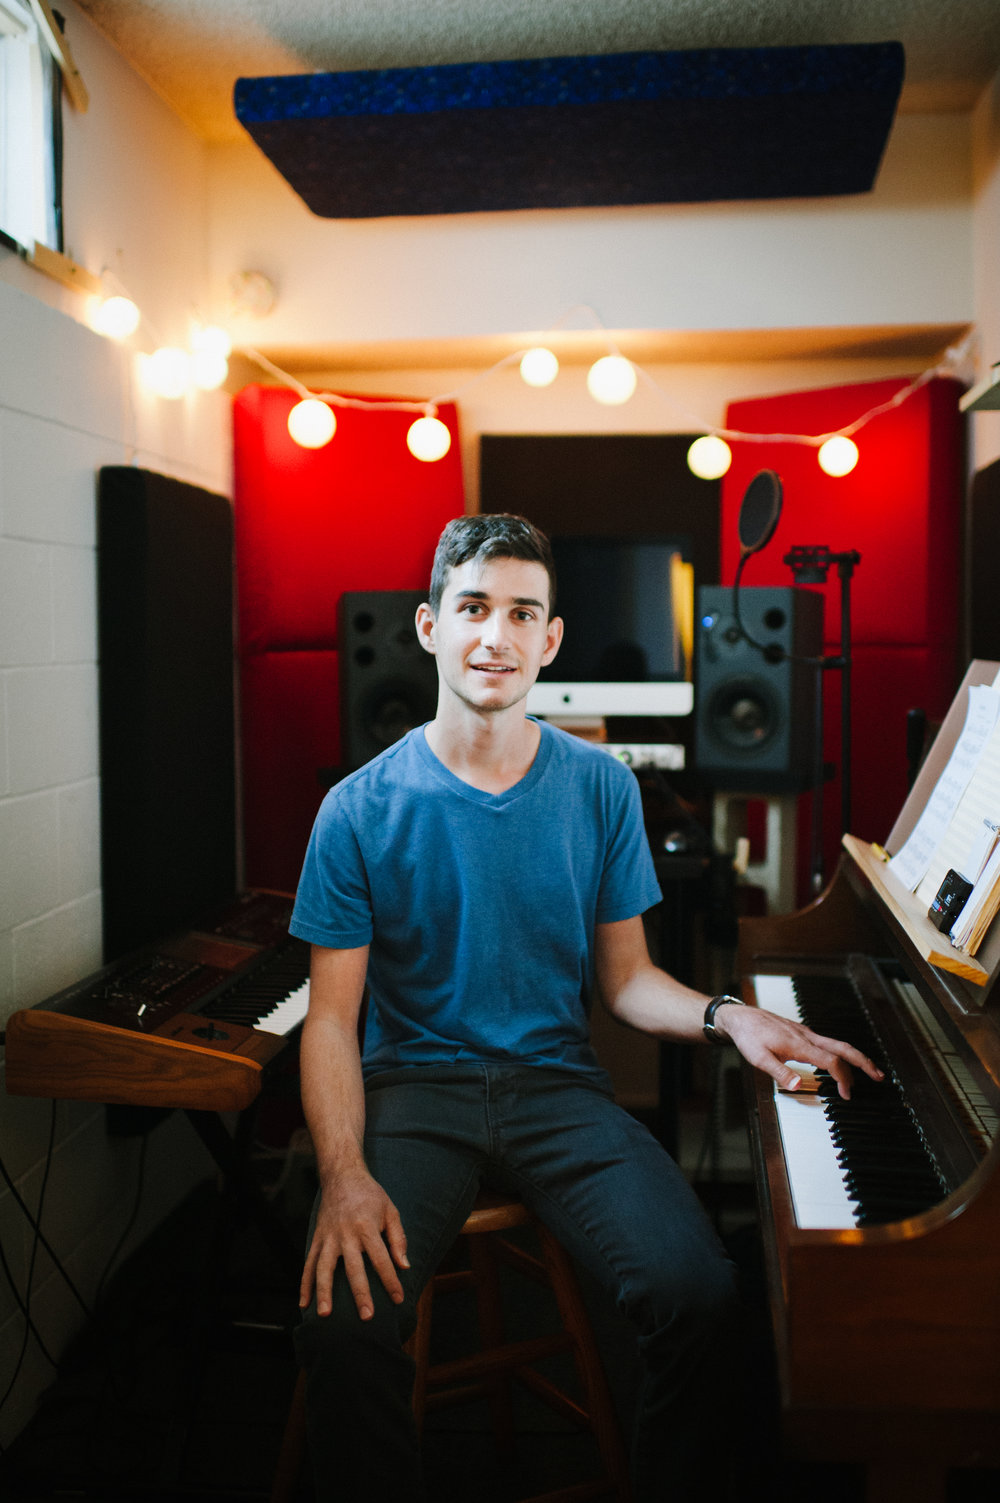 Ted Case is a freelance composer based in Los Angeles, CA. - Ted moved from his home in Portland, OR to Southern California to attend music school at USC's Thornton School of Music. He majored in jazz piano, with additional intensive study in composition and recording. Since graduating in 2014, he has enjoyed a busy life in the Los Angeles music scene - writing string arrangements for indie bands, performing as a music director and keys player, and producing music for media.